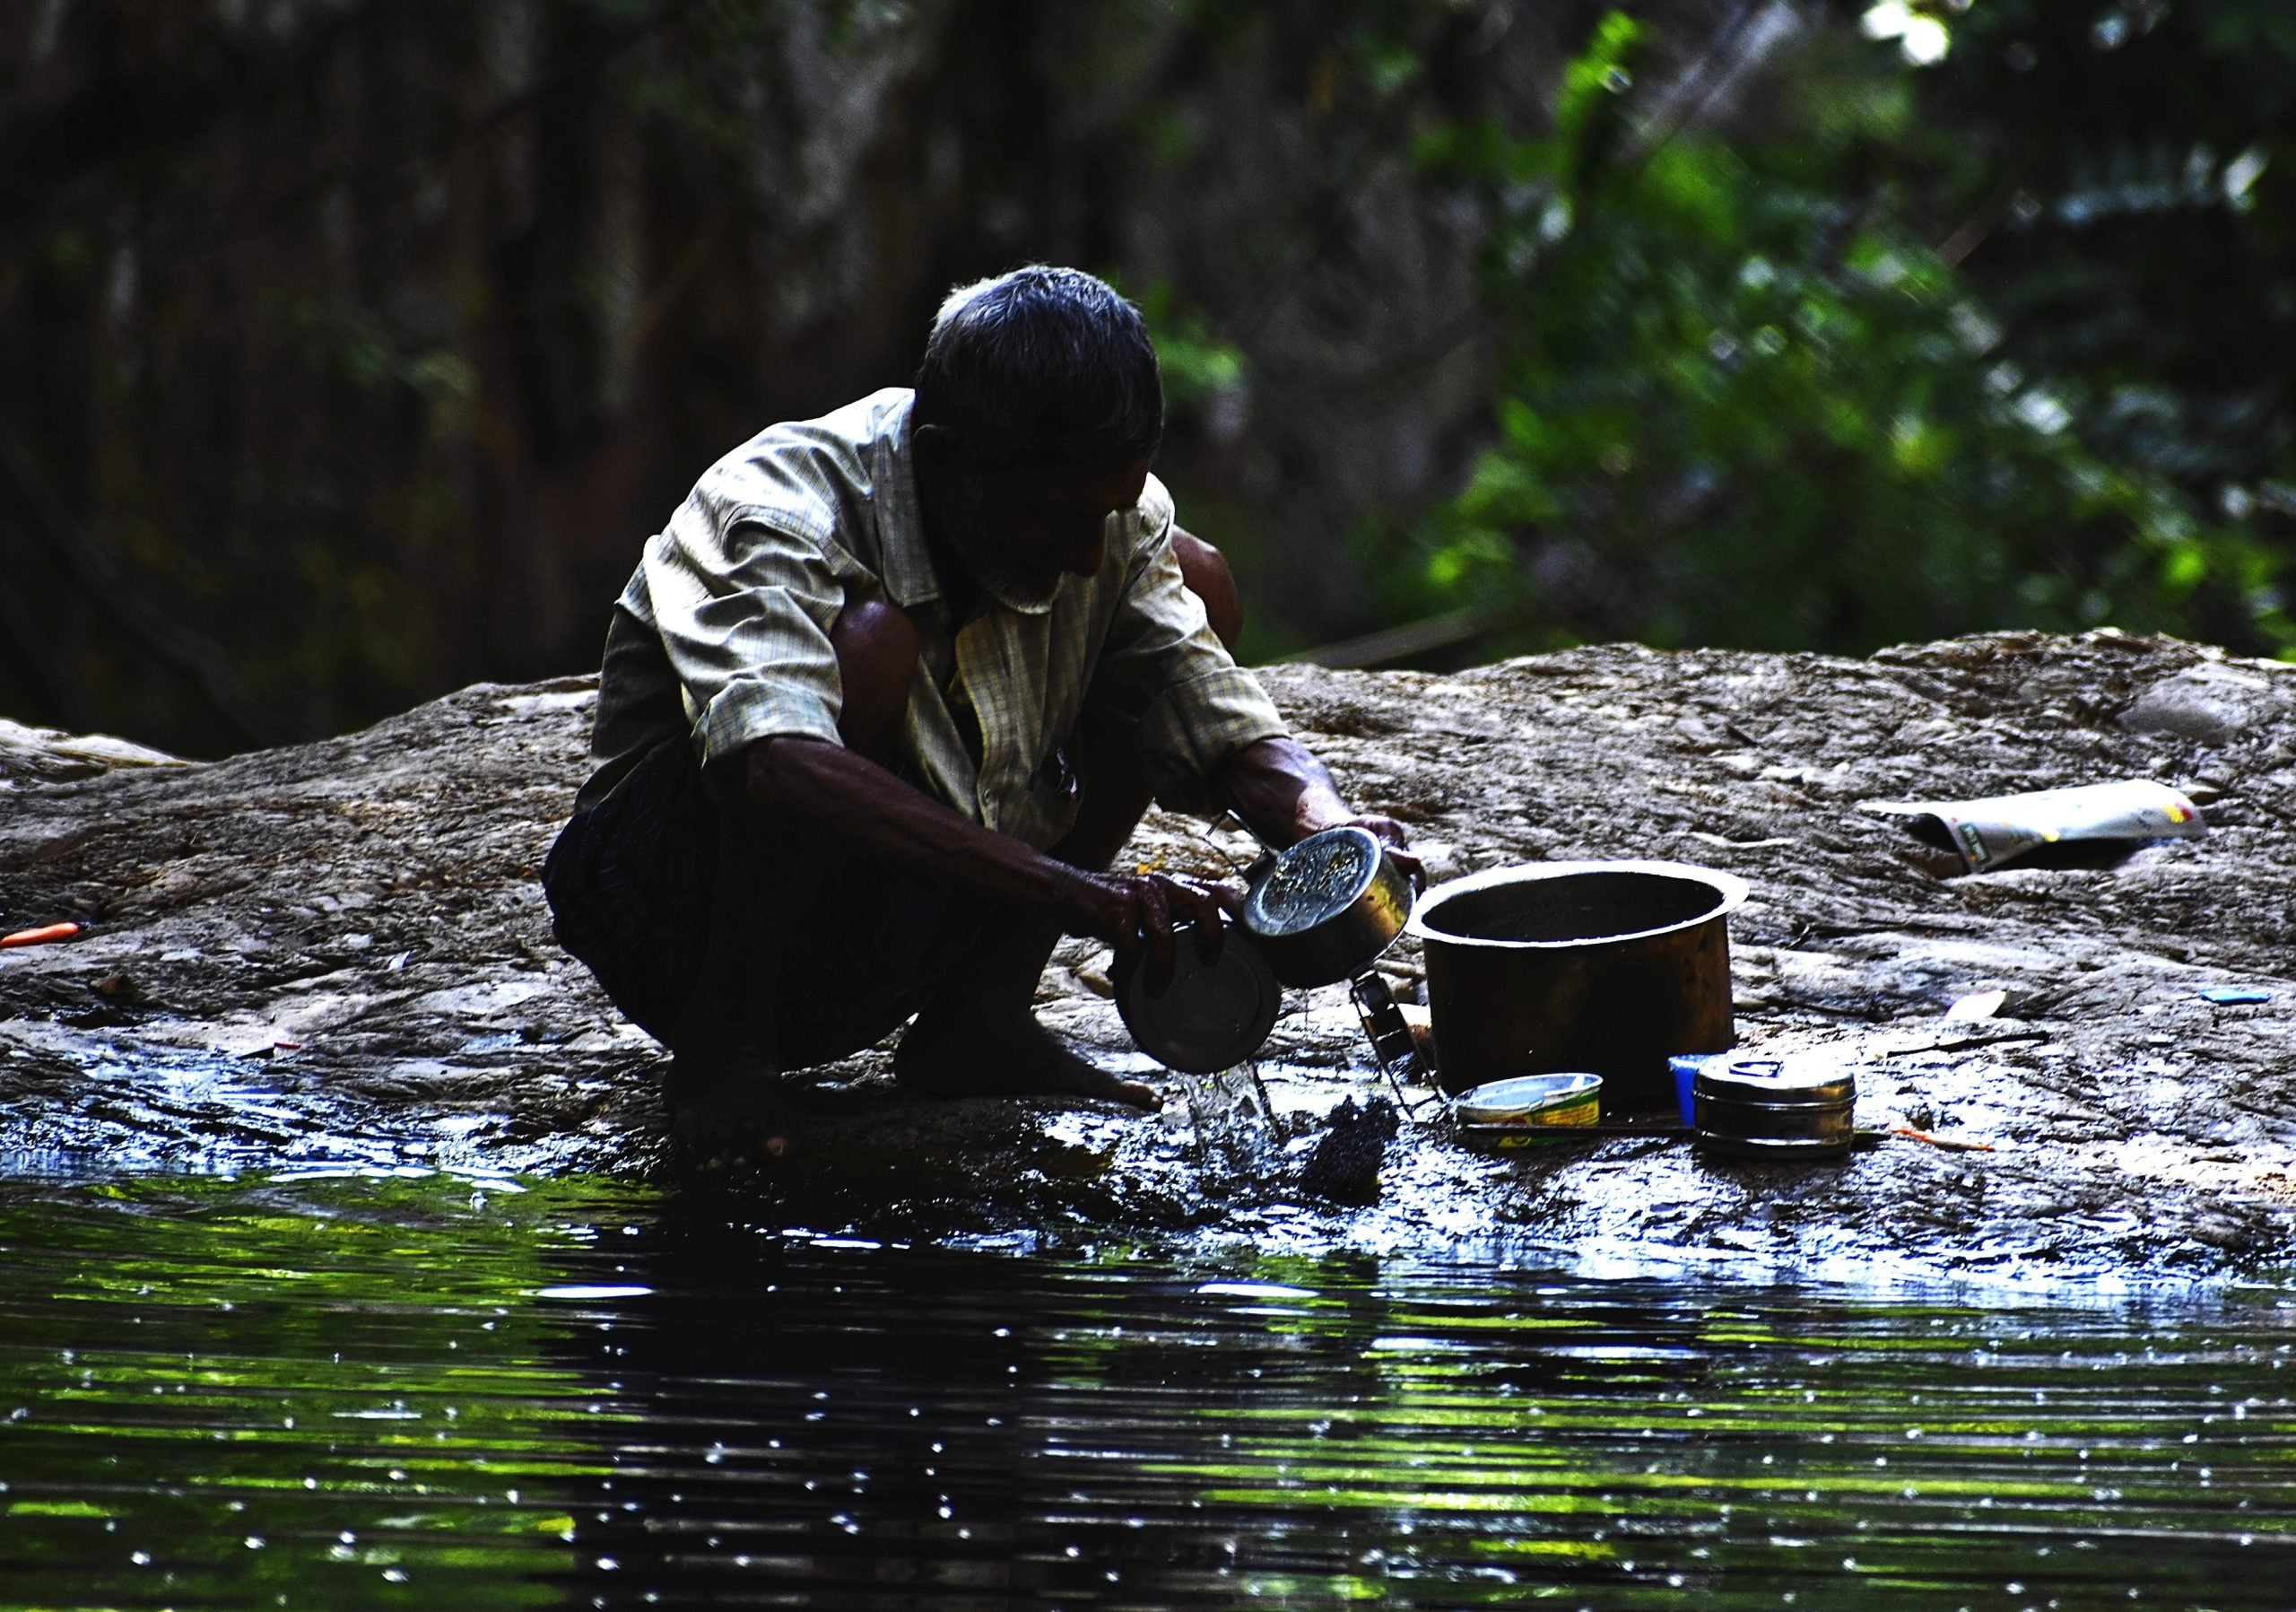 Man cleaning pots near the river